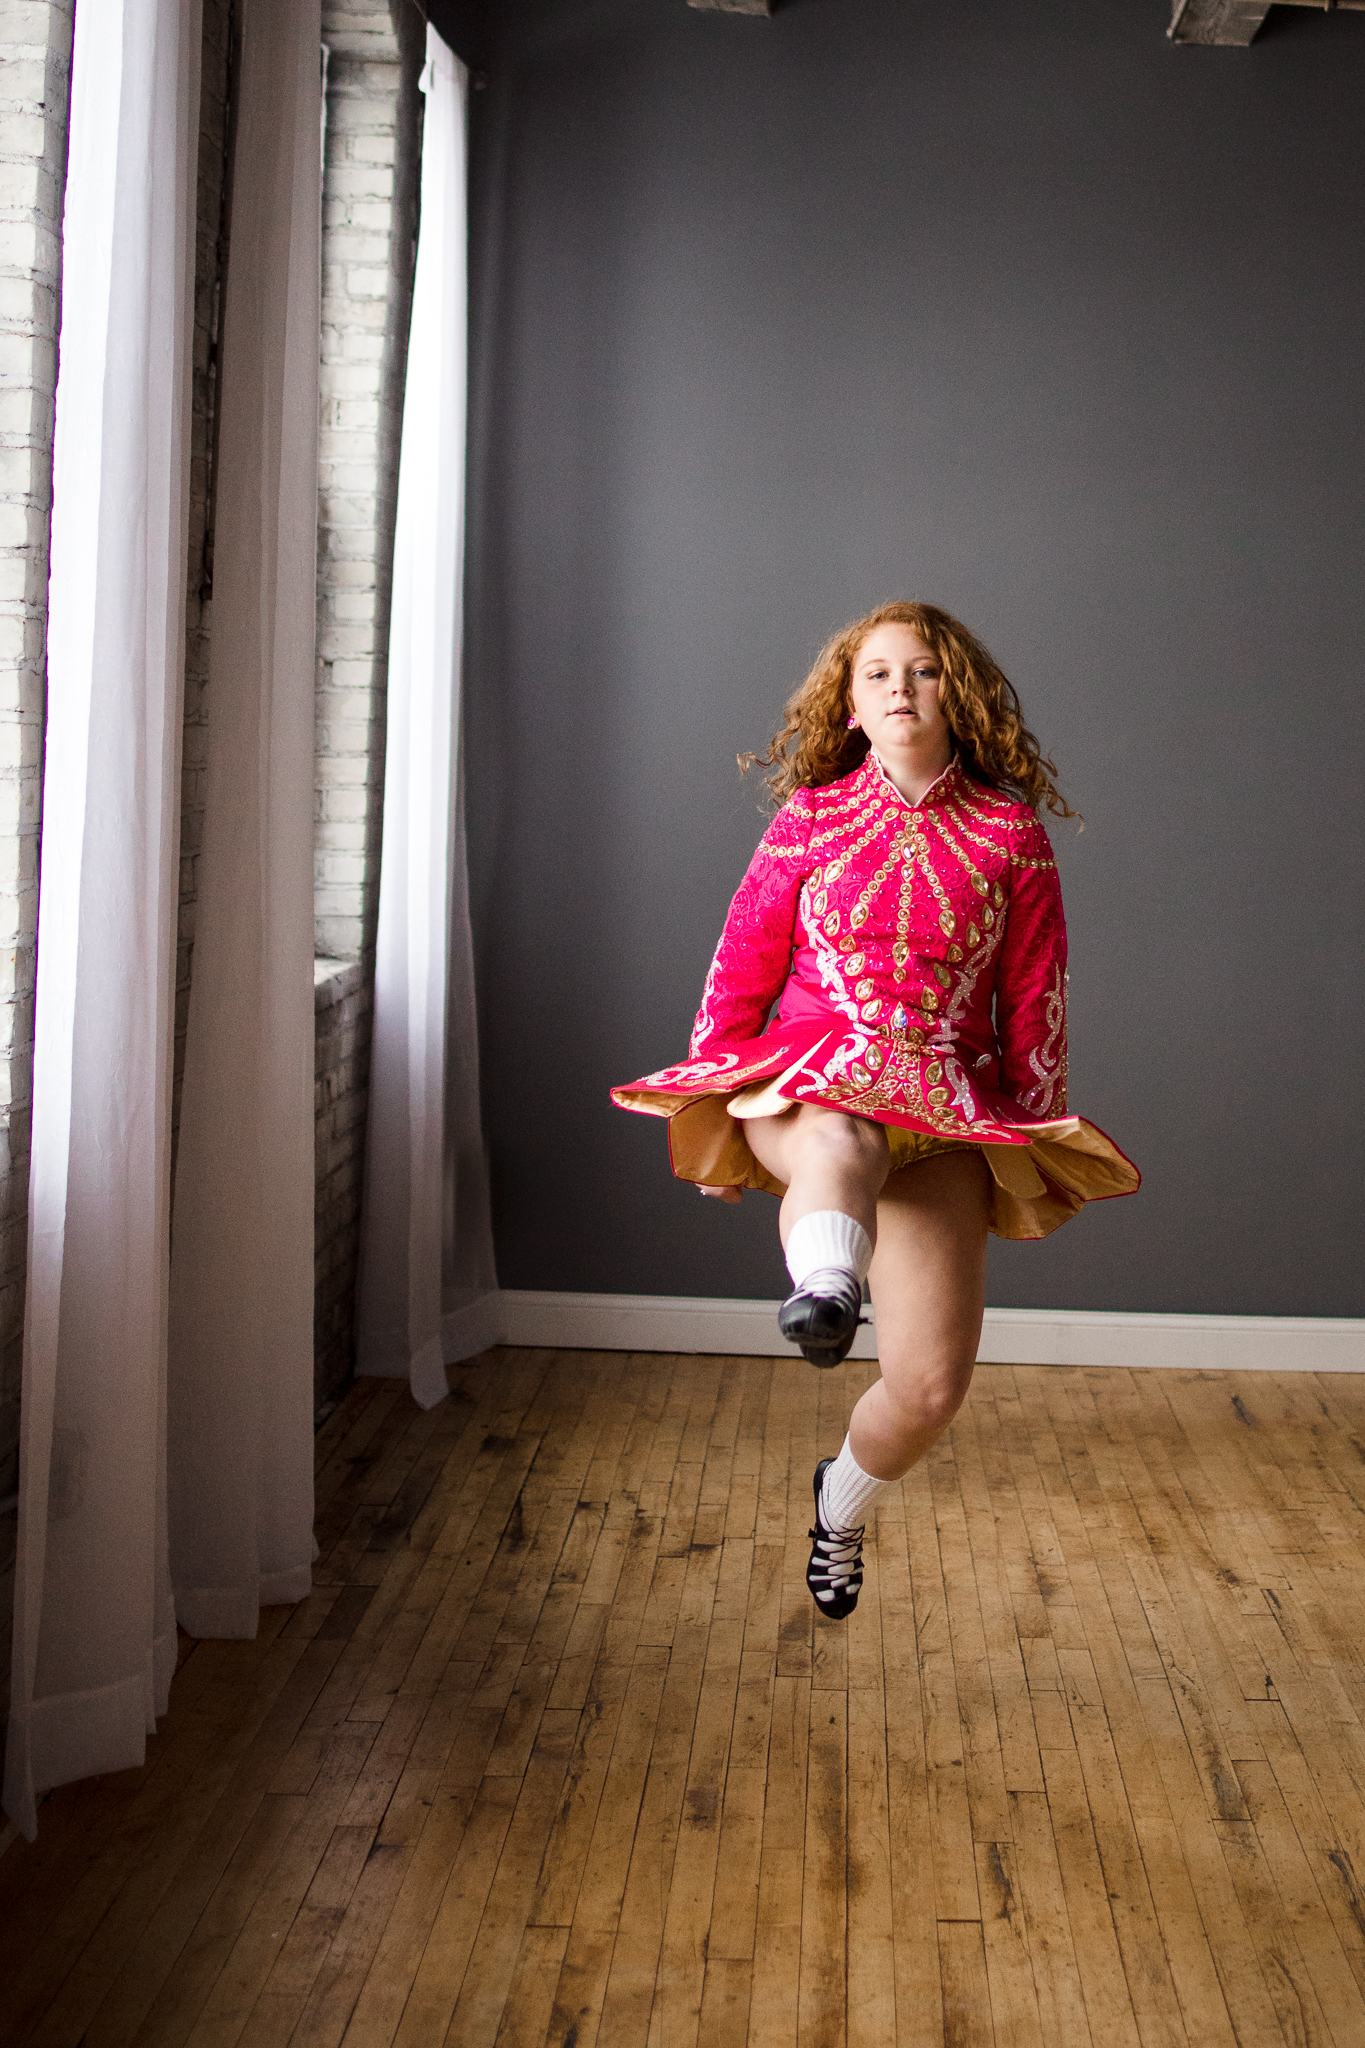 dark pink Irish Dance dress with white socks and black shoes - Orono Lifestyle Family Photographer